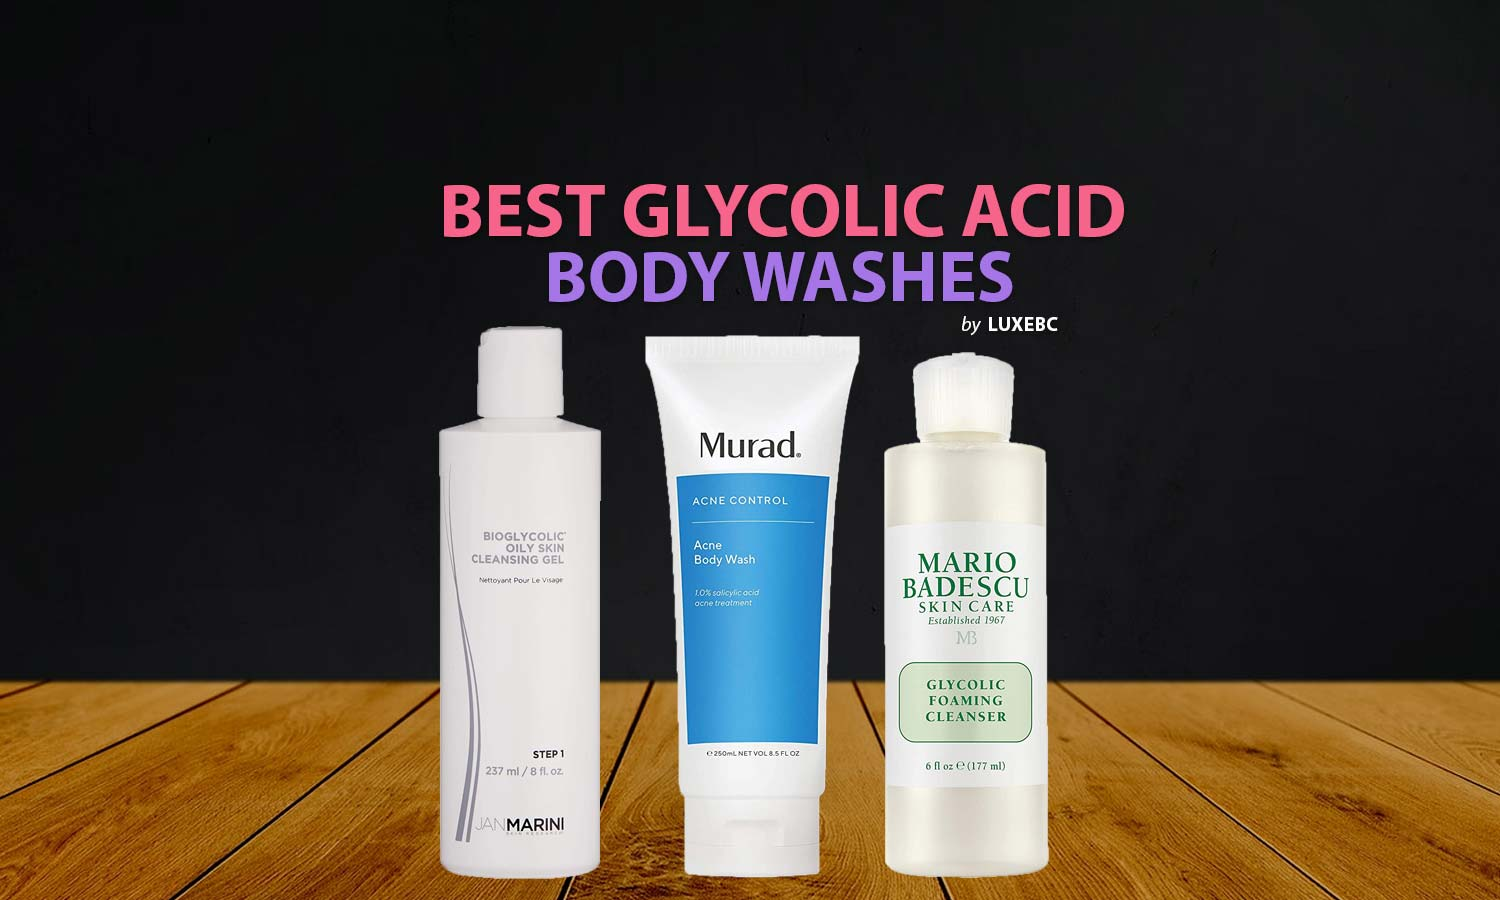 Best glycolic acid body washes